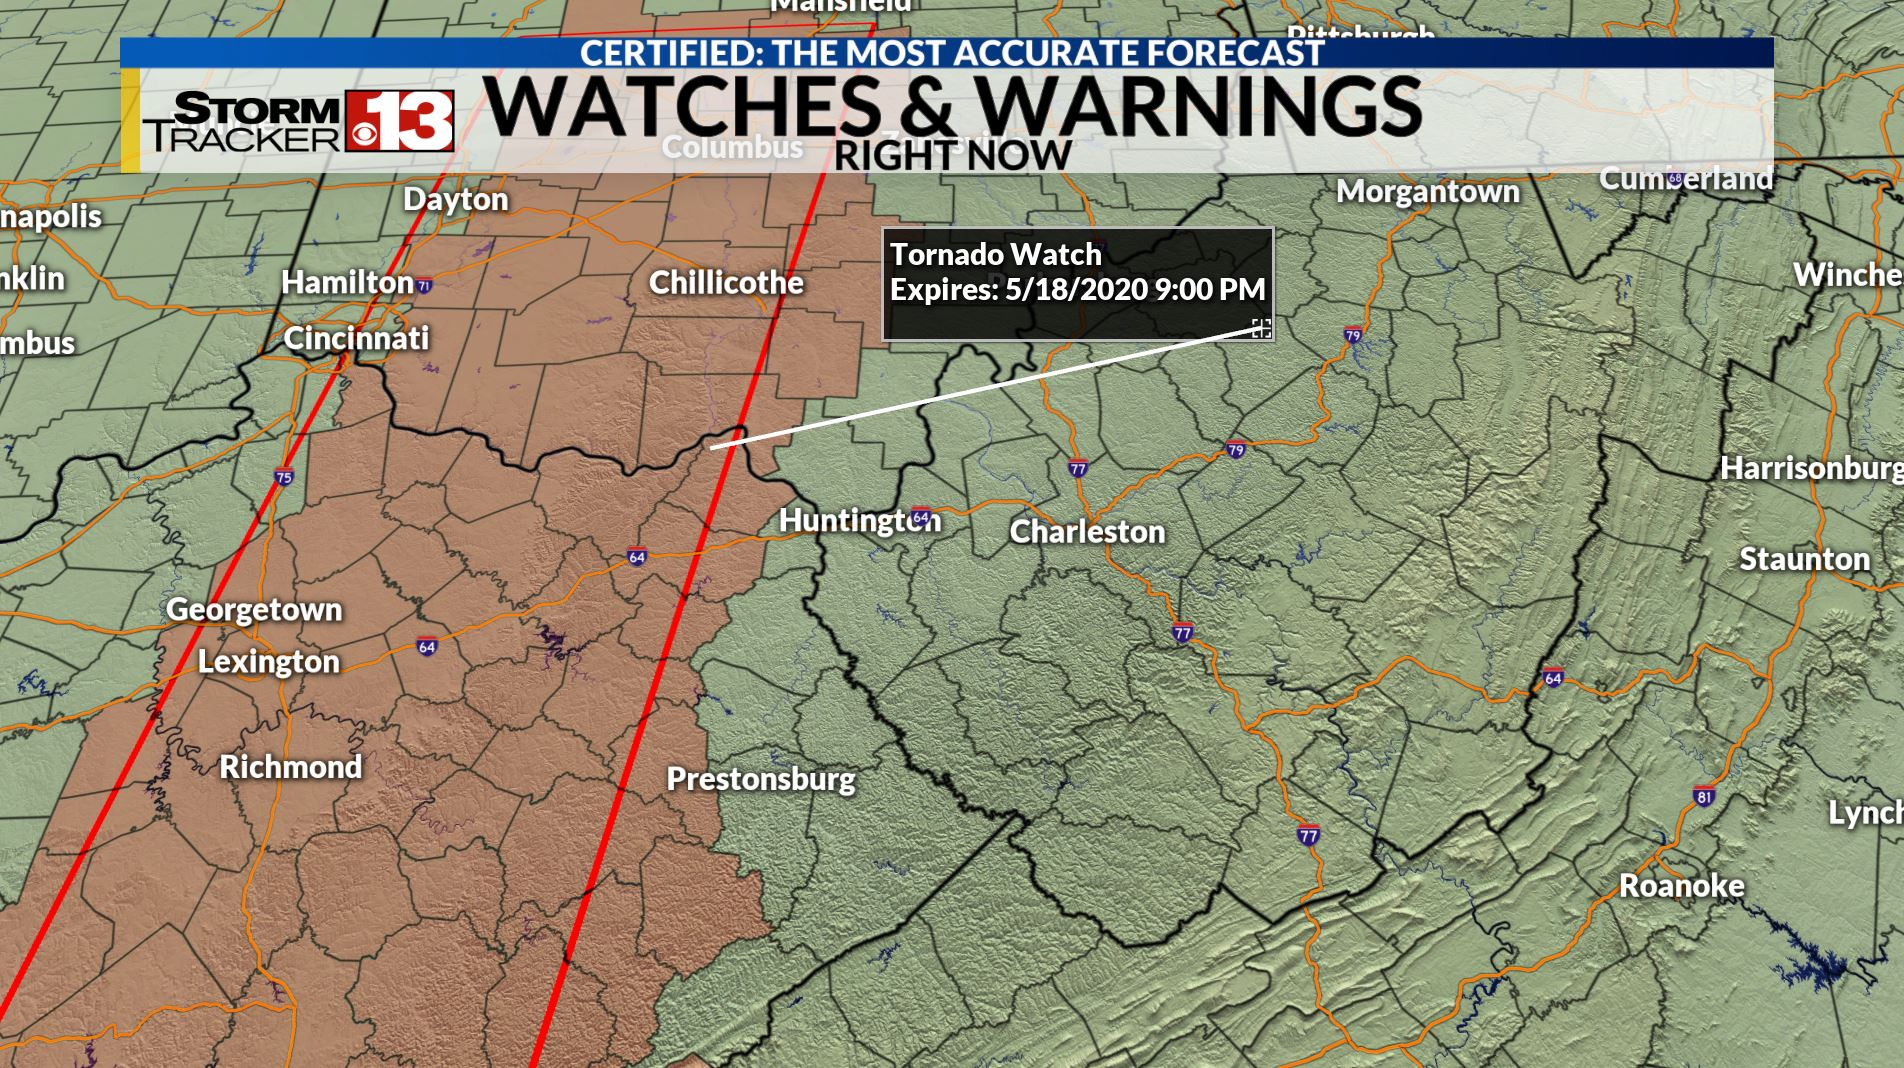 Tornado Watch Issued For Parts Of West Virginia Severe Weather Possible Tonight Wdvm25 Dcw50 Washington Dc Detailed weather forecast for today, tomorrow, the week, 10 days, and the month on yandex.weather. tornado watch issued for parts of west